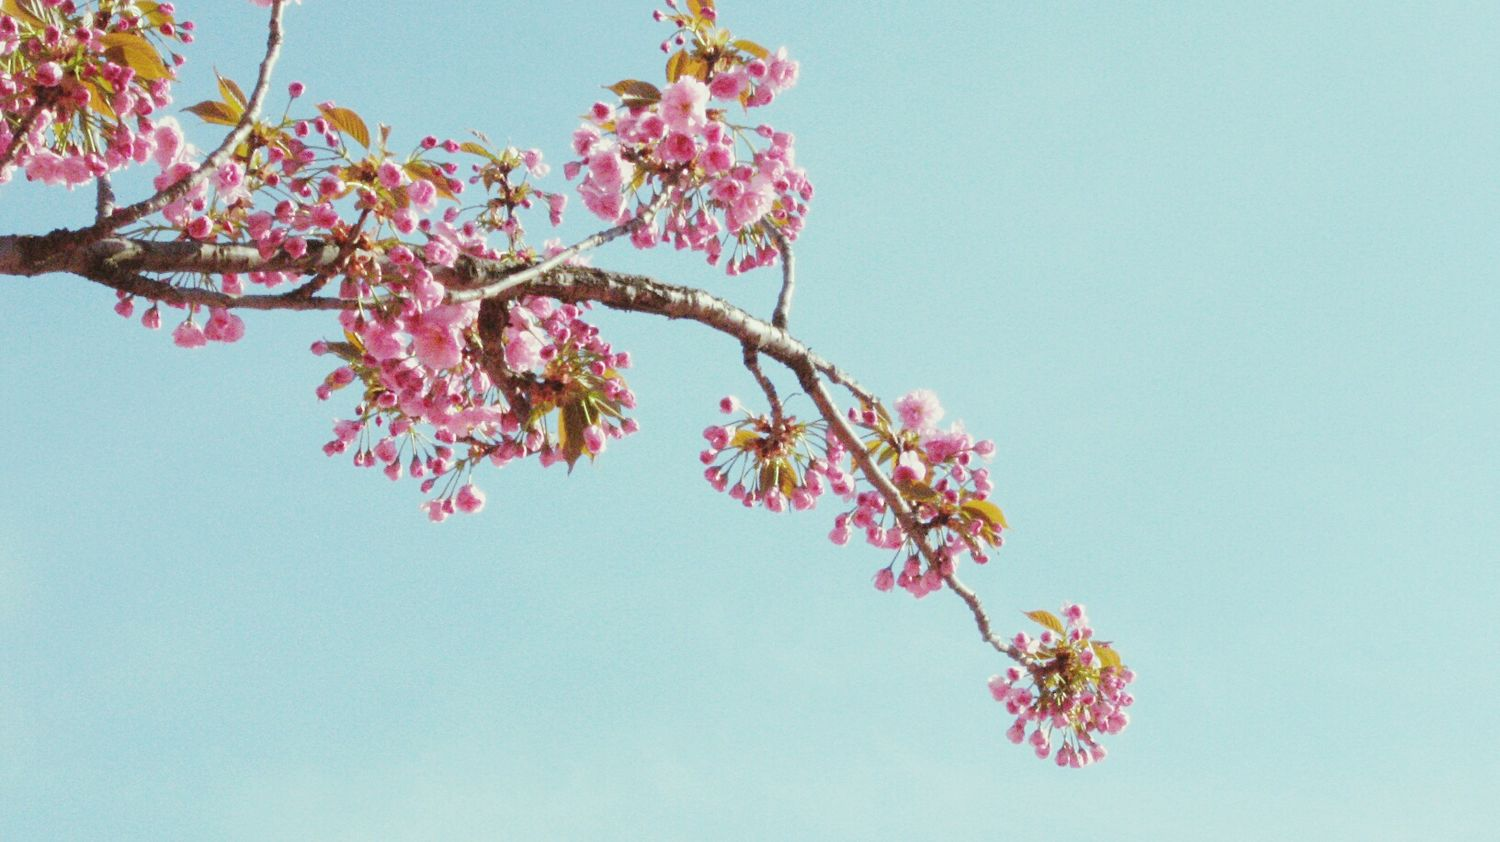 お花見ー♪ 桜 Spring Tree_collection  Nature_collection Blossom TreePorn Sakura2016 Pink Flower Springtime Soft Light